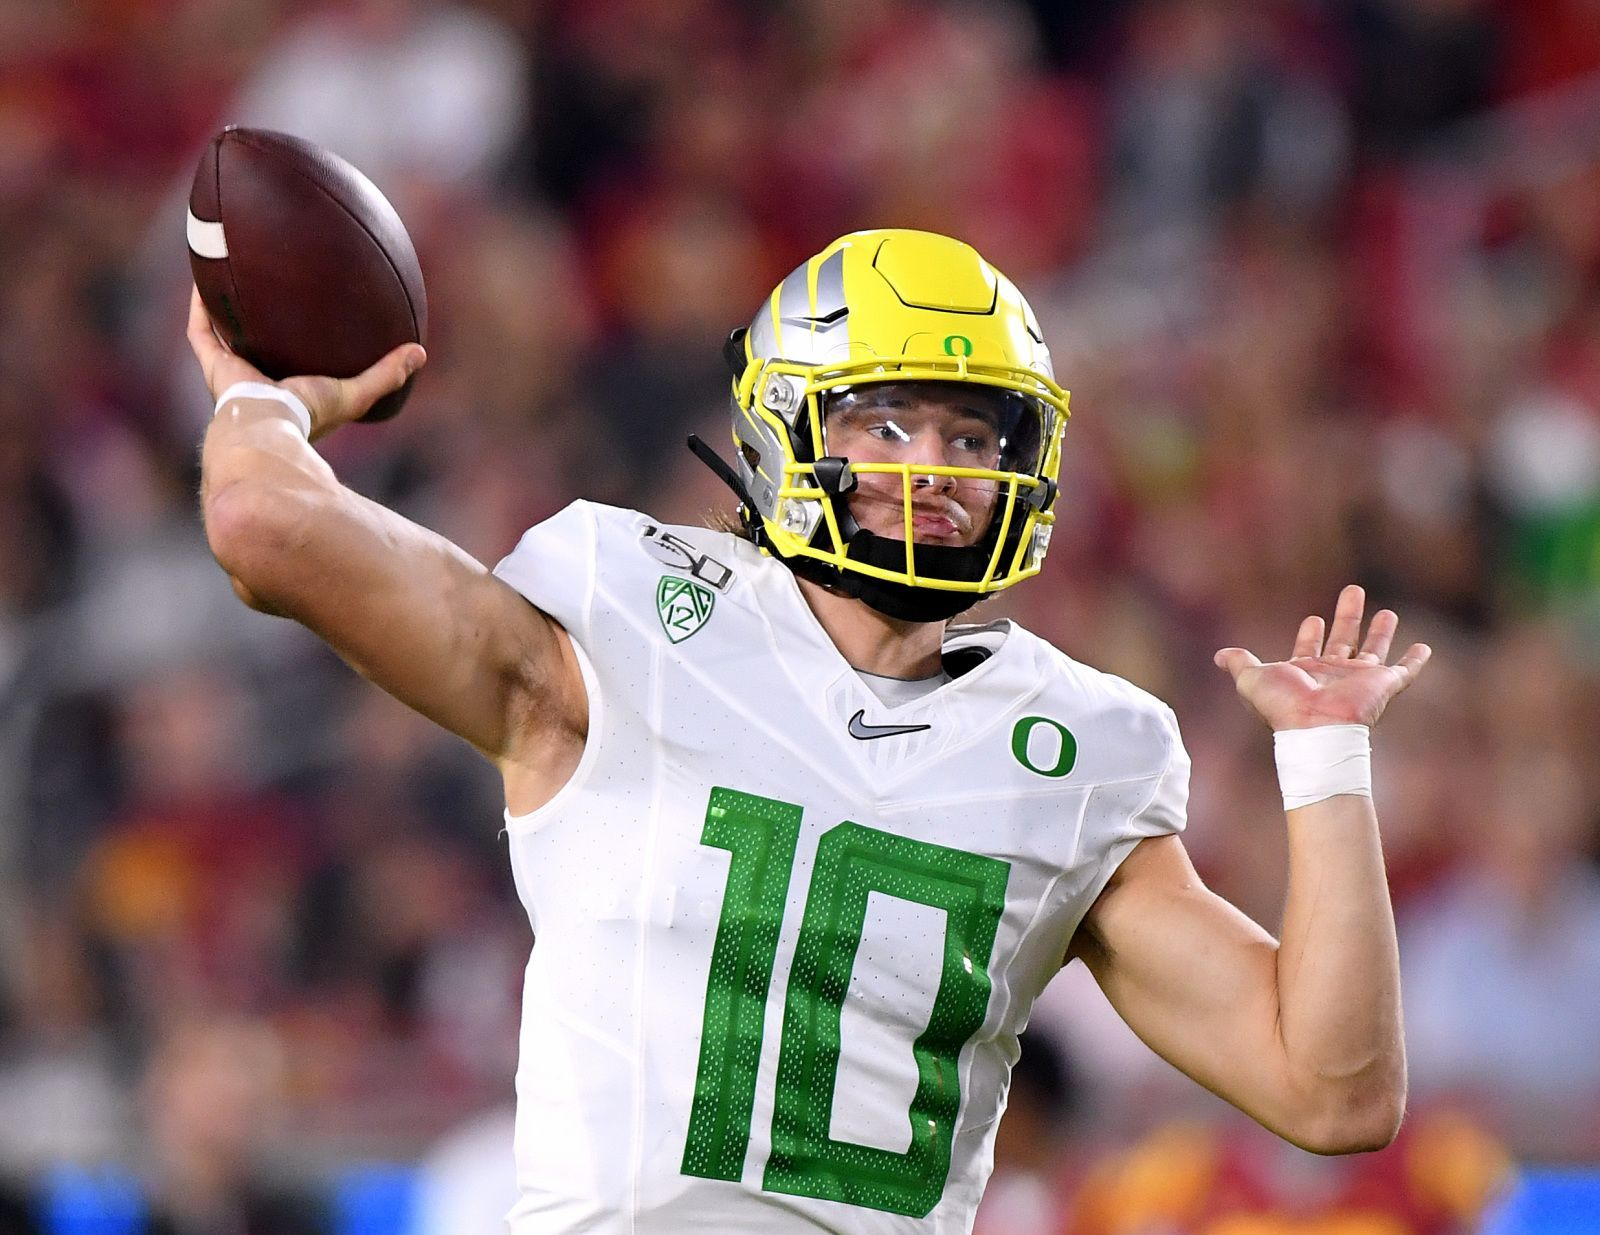 2020 Nfl Draft Justin Herbert Gaining Steam As The Qb1 National Football League News Oregon Ducks Quarterback Ju Nfl Draft National Football Oregon Football